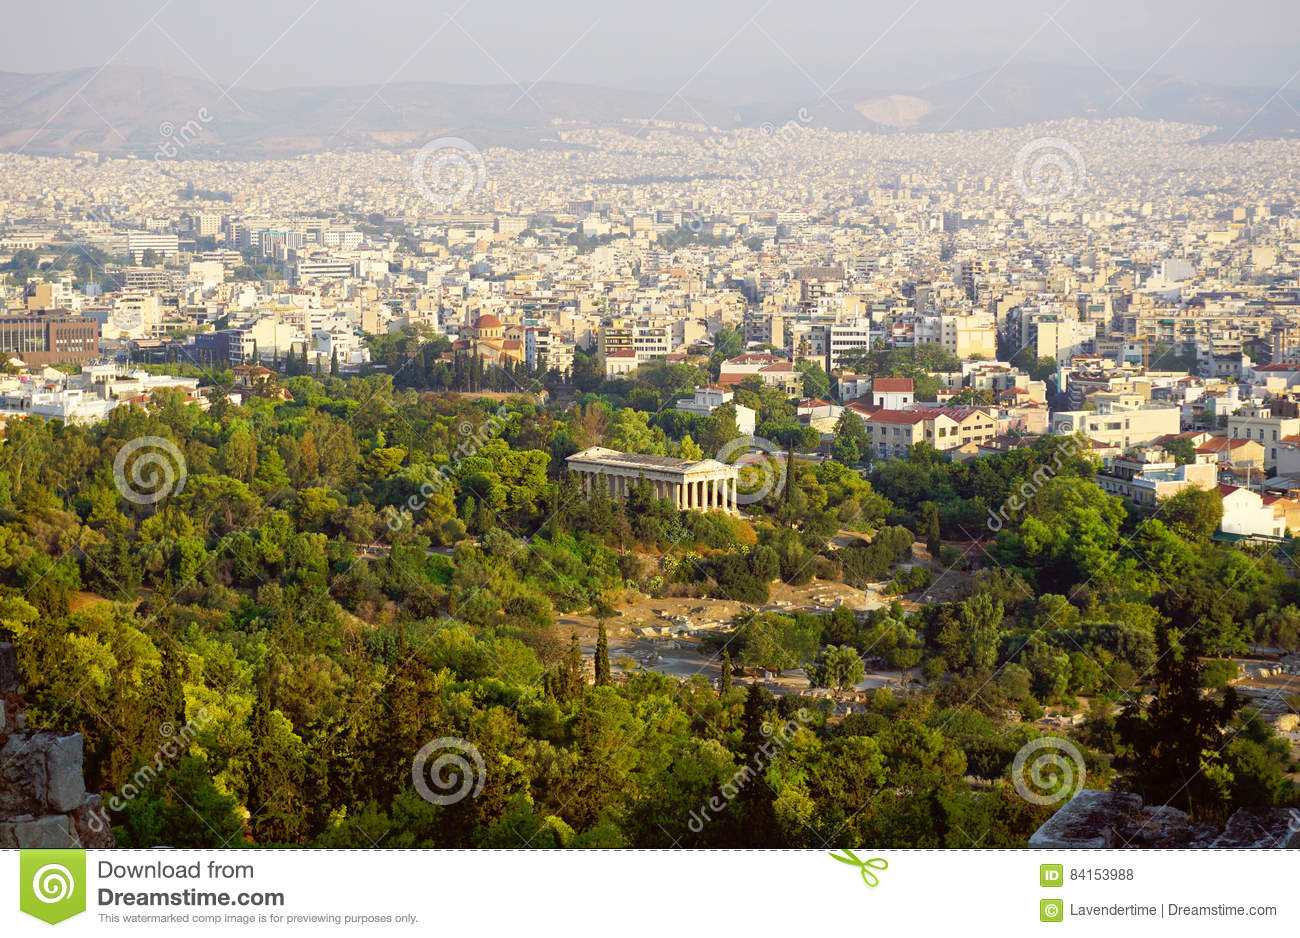 Hephaestus palace and Athens skyline view from Acropolis